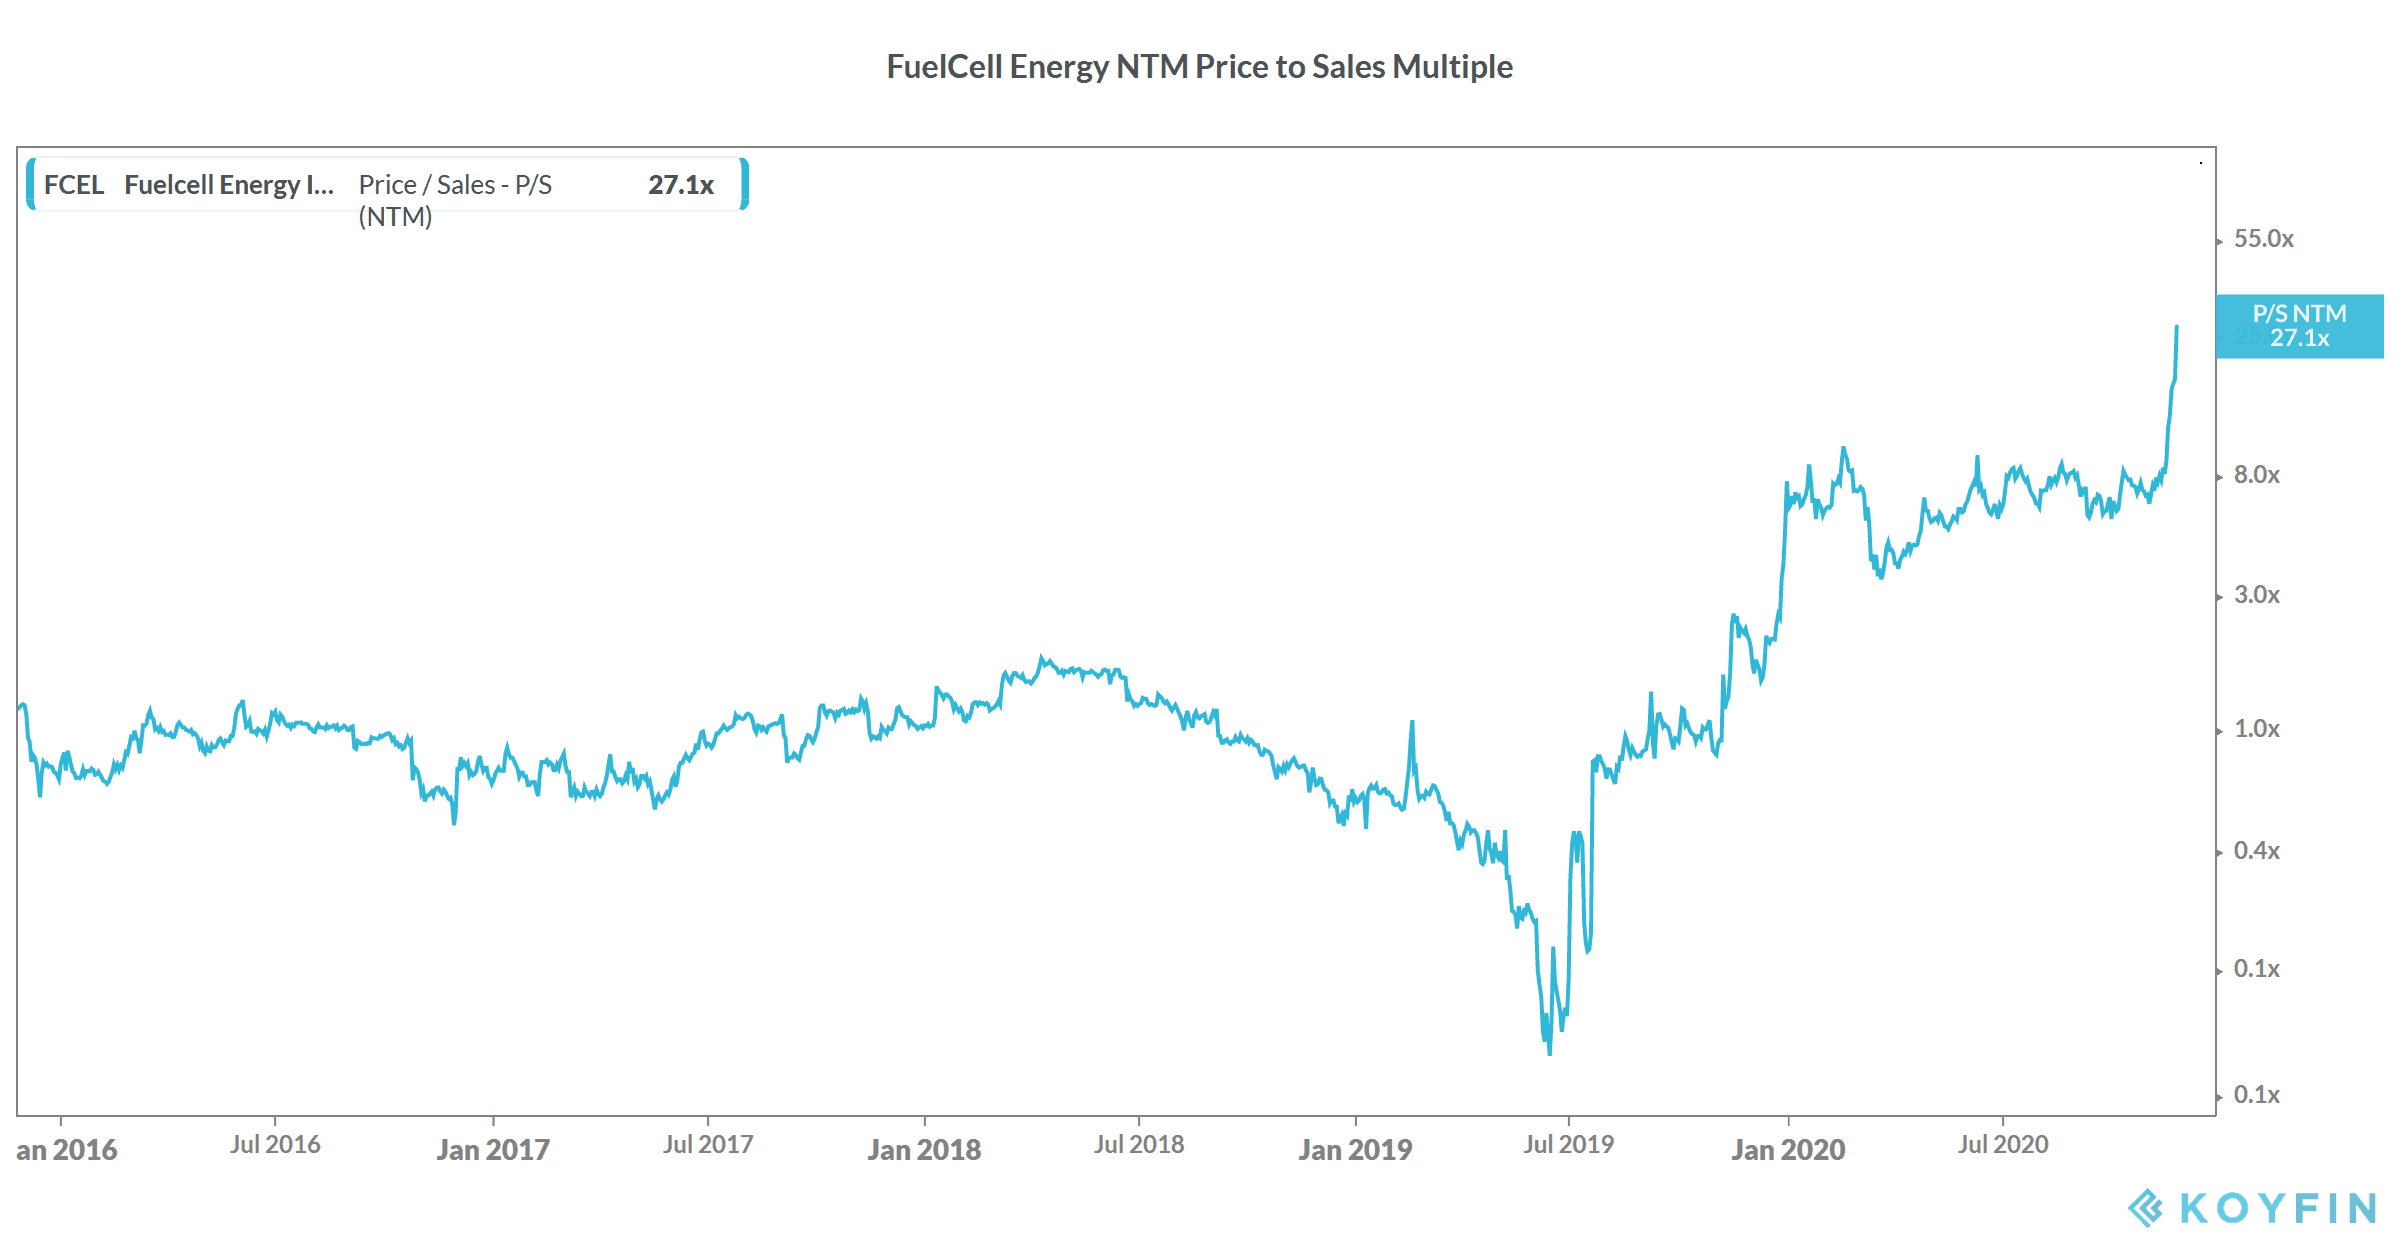 FuelCell energy stock valuation